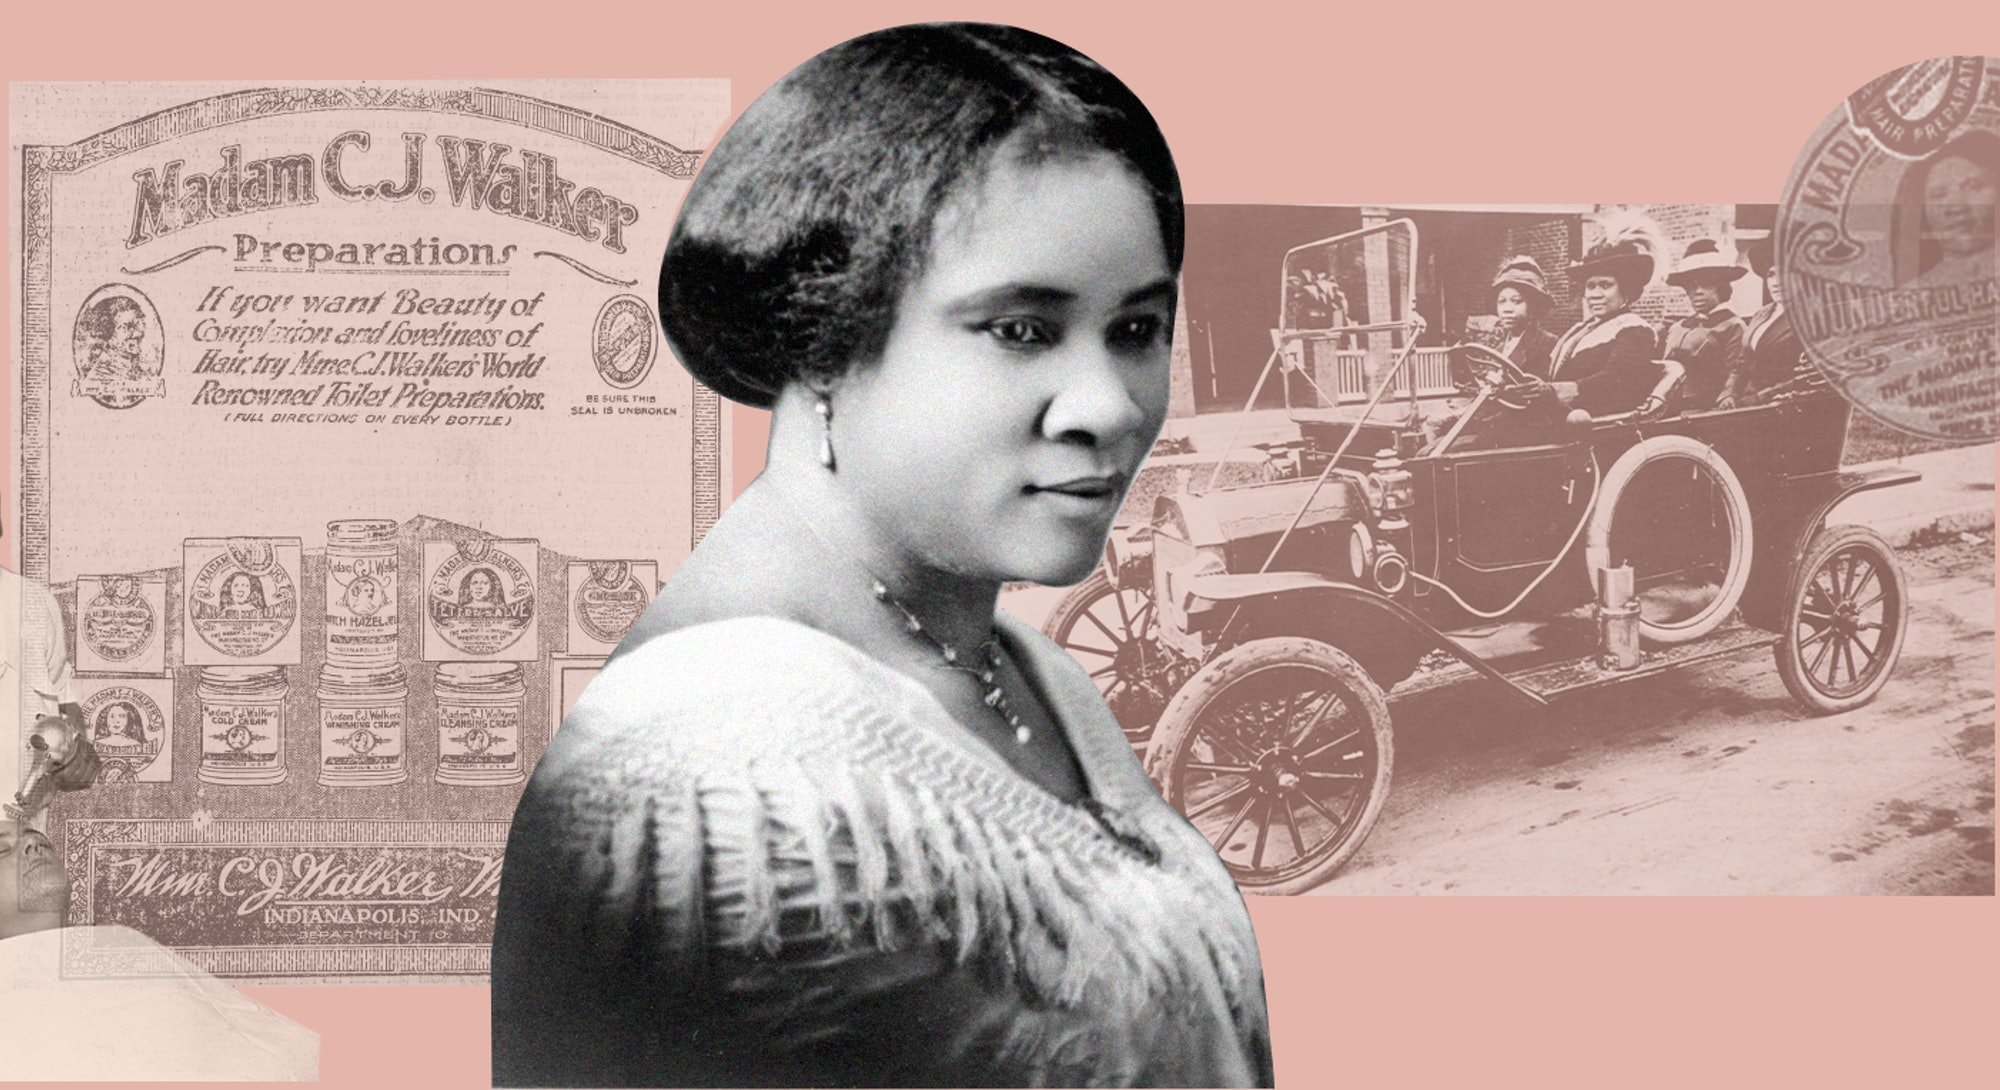 What Netflix S Madam C J Walker Show Gets Wrong Right According To Her Descendant